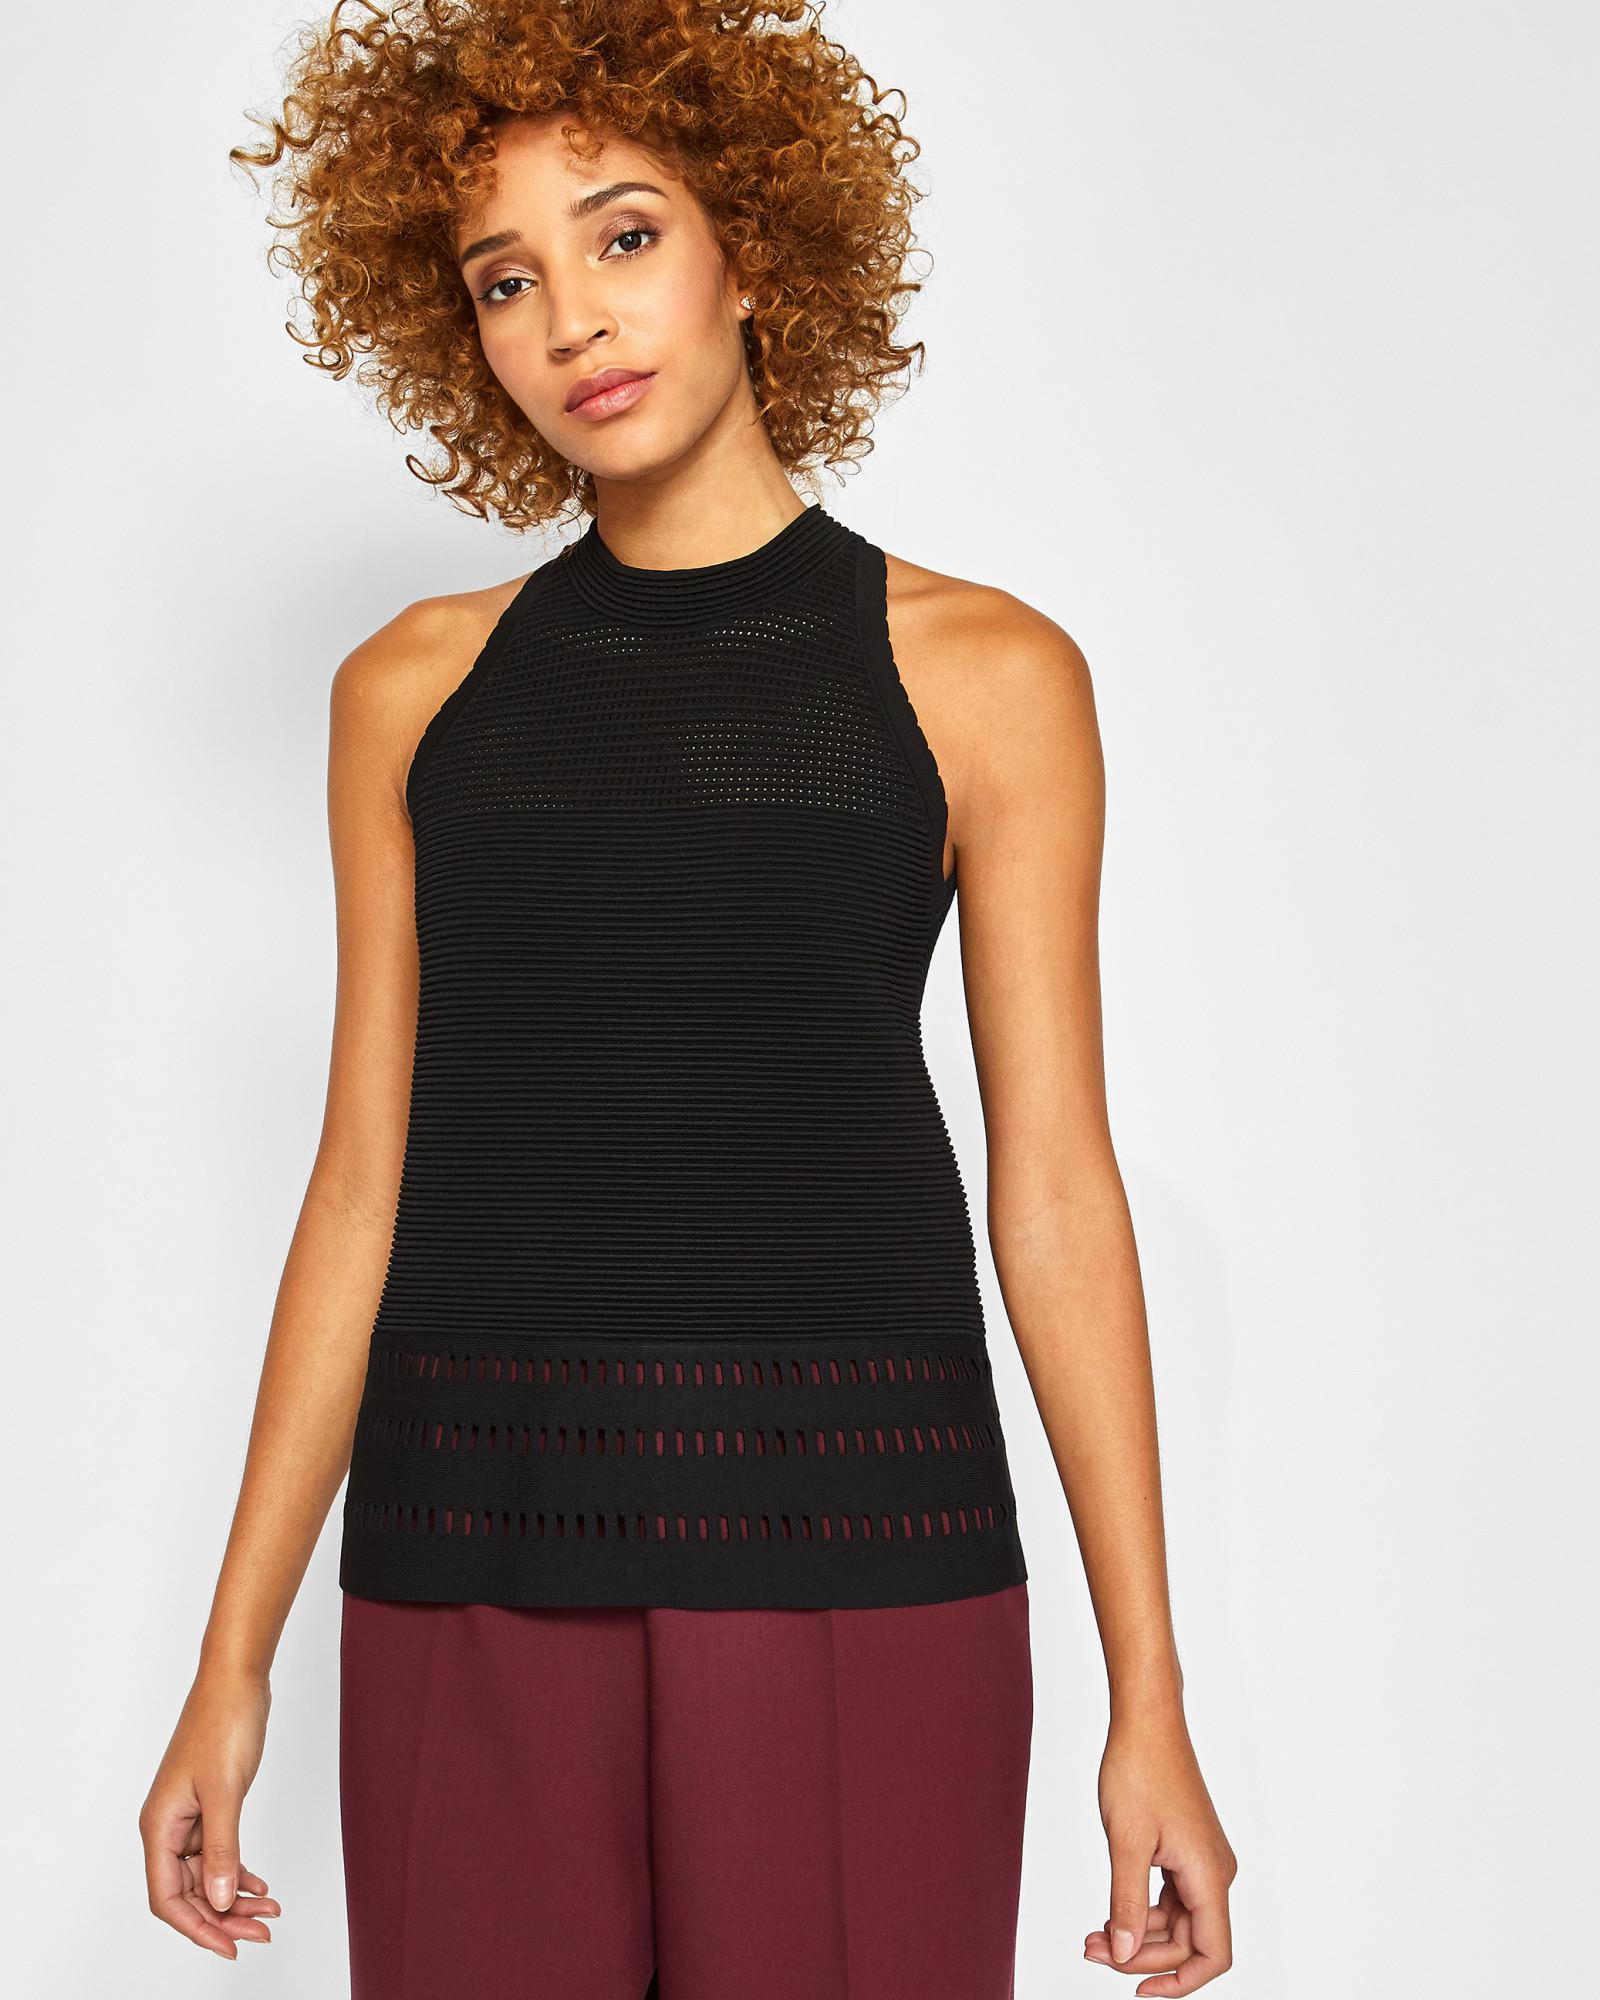 a2374be60 Lyst - Ted Baker Ottoman Knitted Top in Black